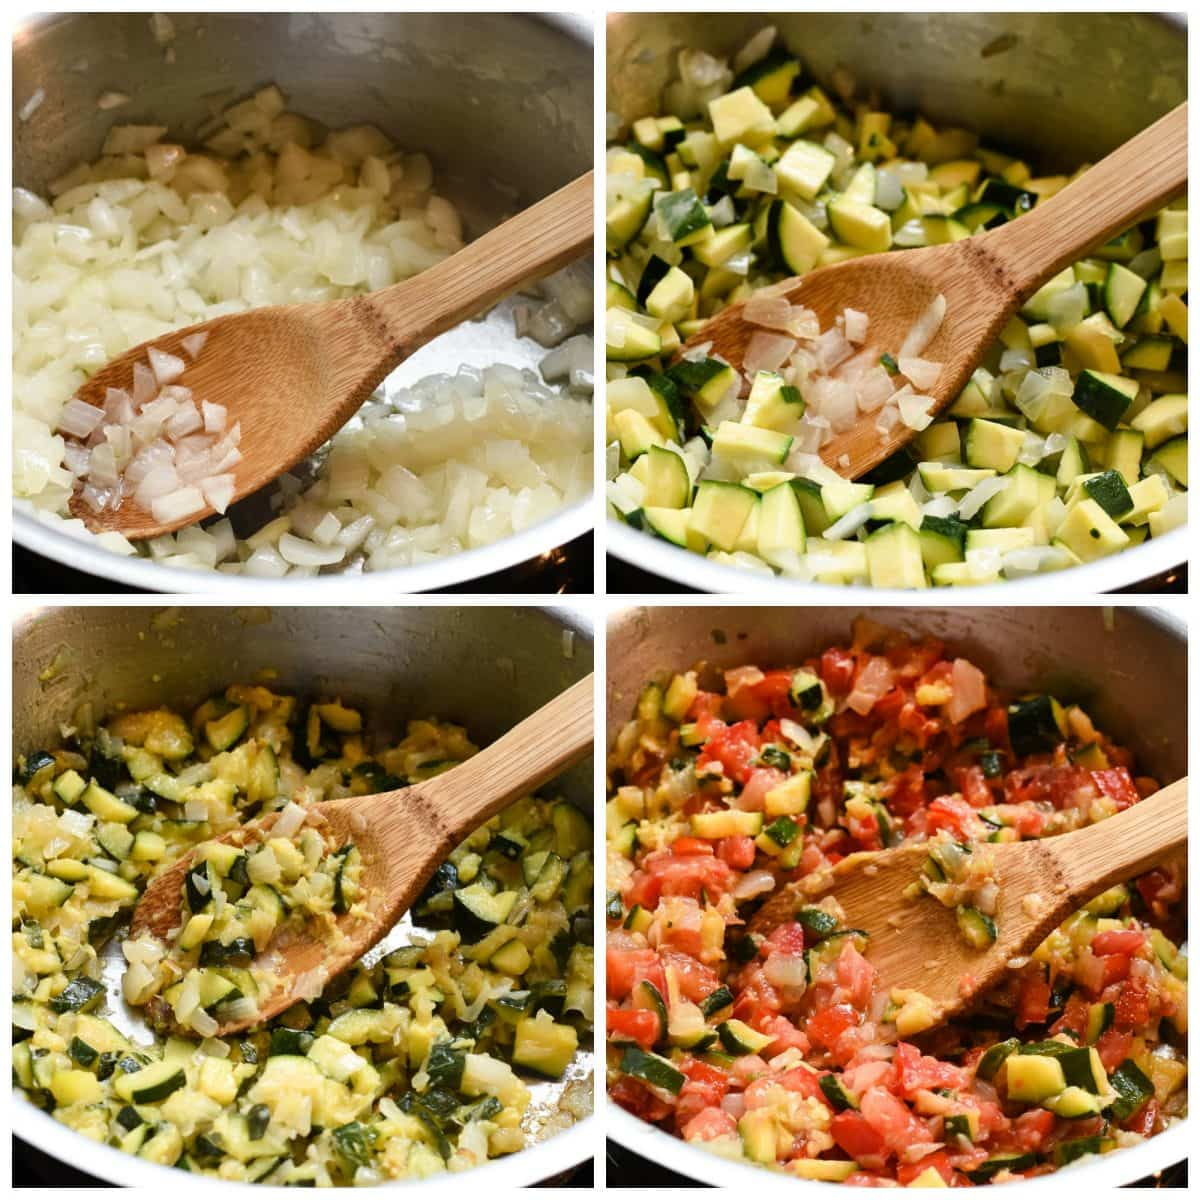 Sauteed vegetables collage in pan